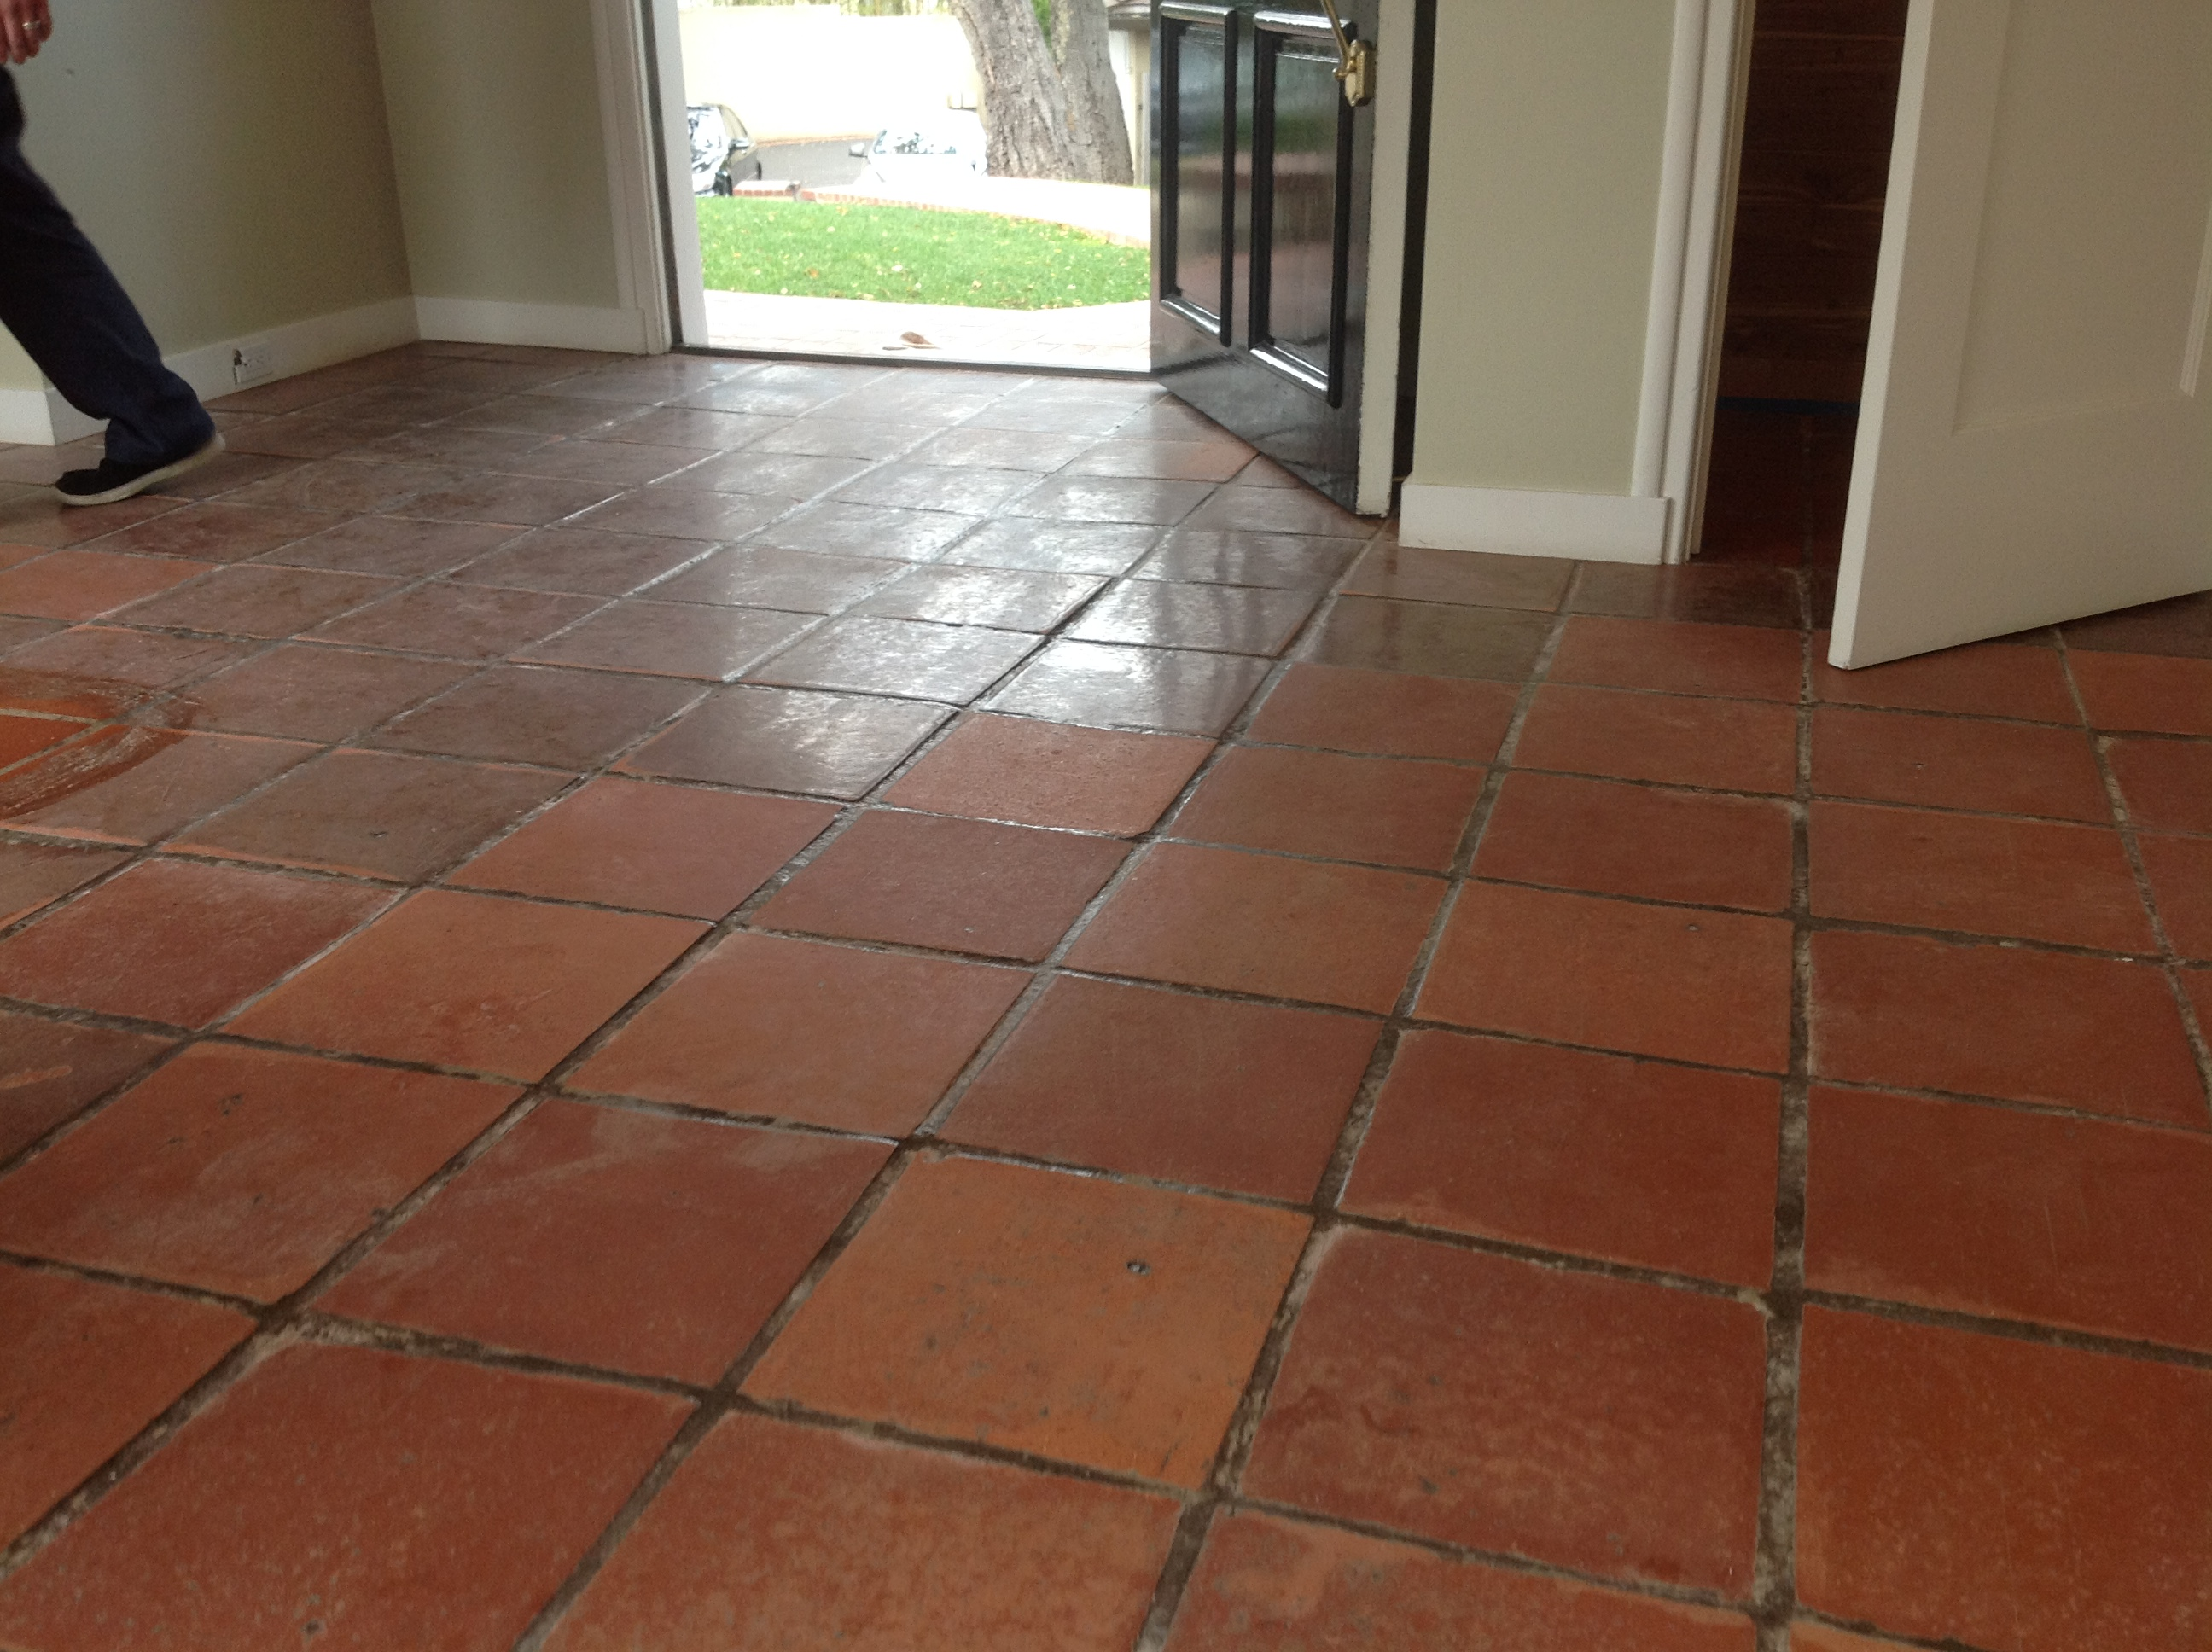 Expert Wax Removal Specialist Of All Antique Pavers Mexican Pavers Amp Ceramic Tile California